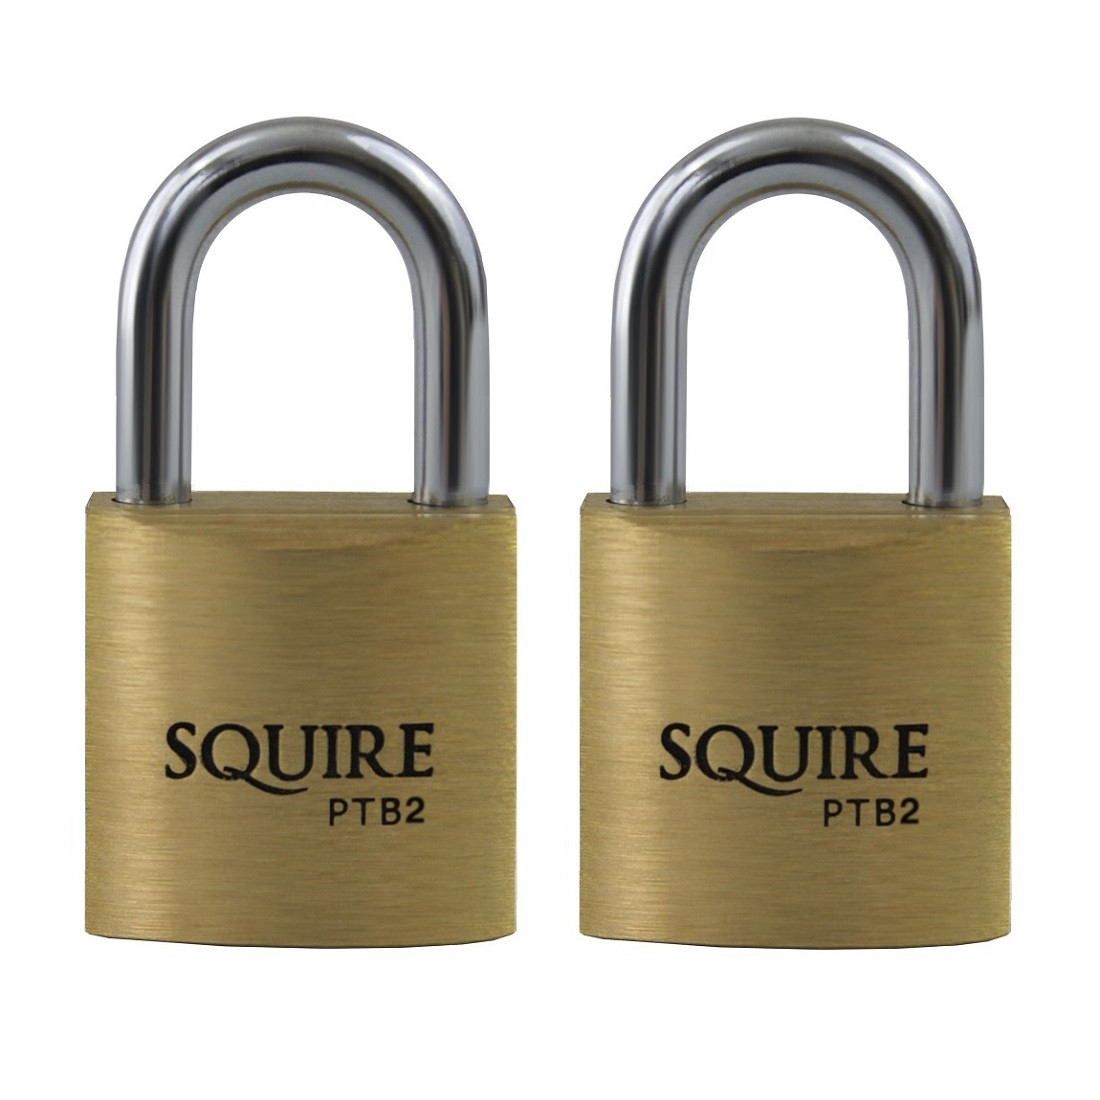 Squire Panther PTB2 Solid Brass Keyed Alike Twin Pack 20mm Padlocks